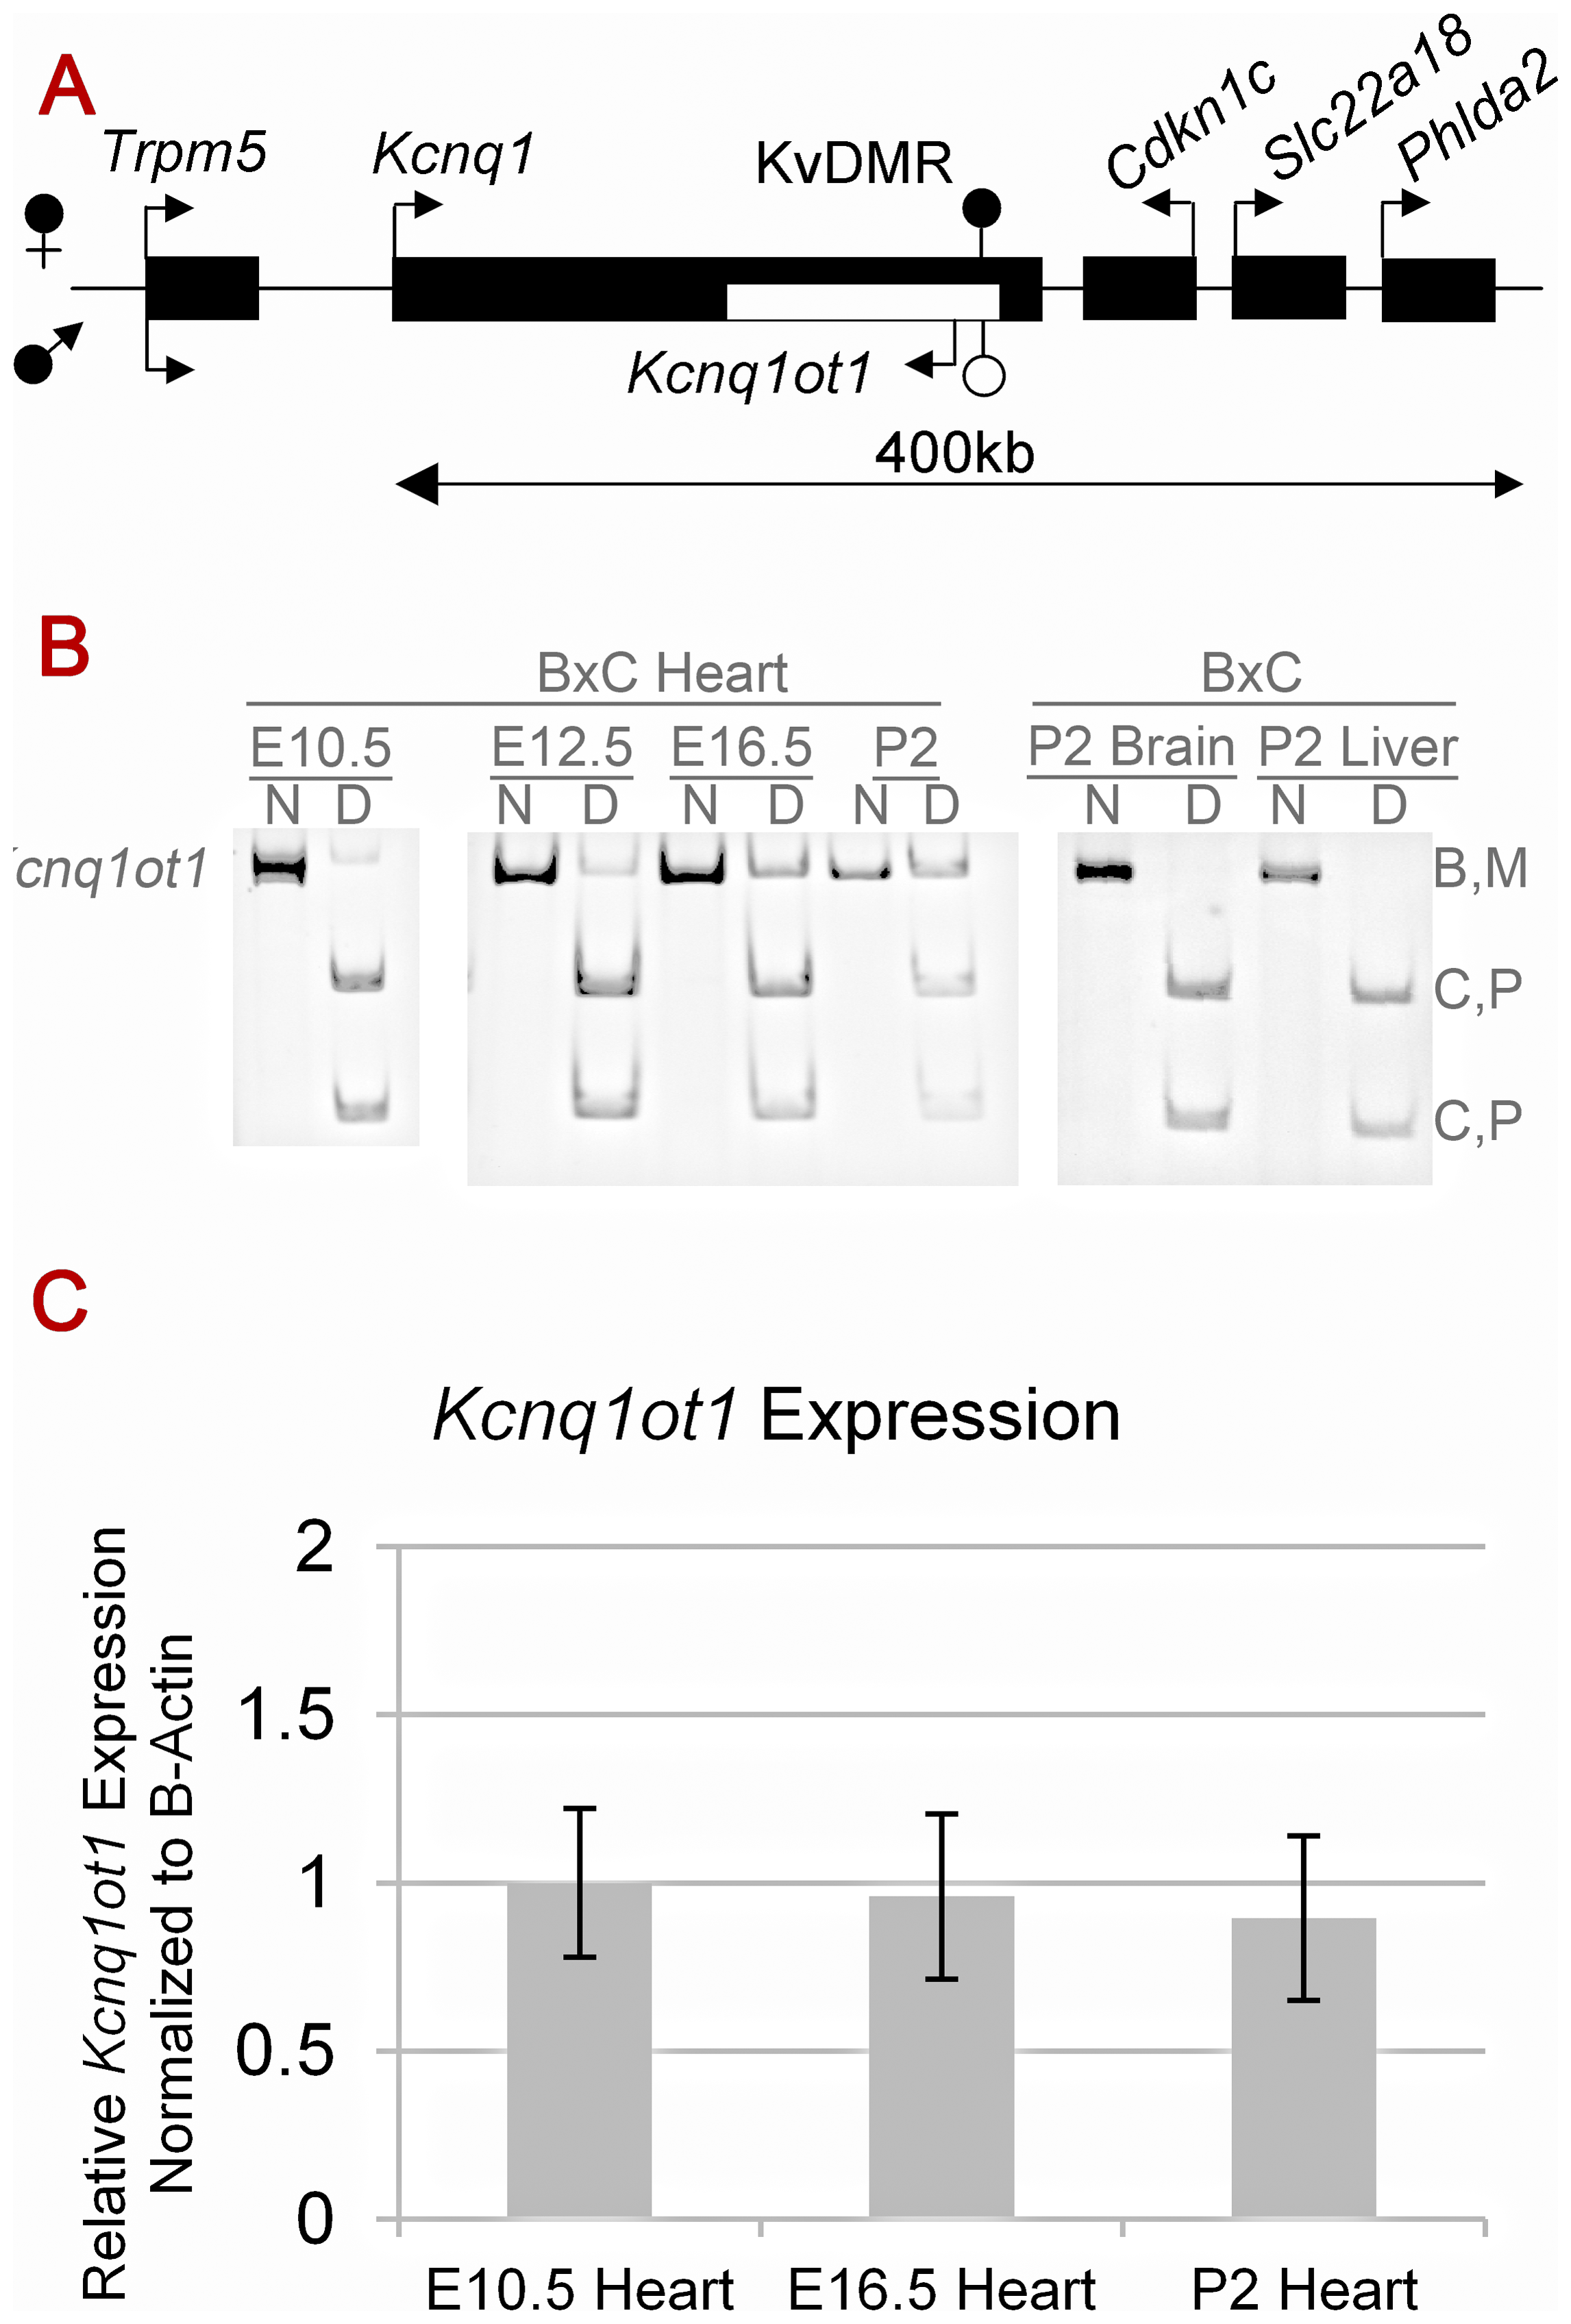 Cardiac expression profile of <i>Kcnq1ot1</i>.